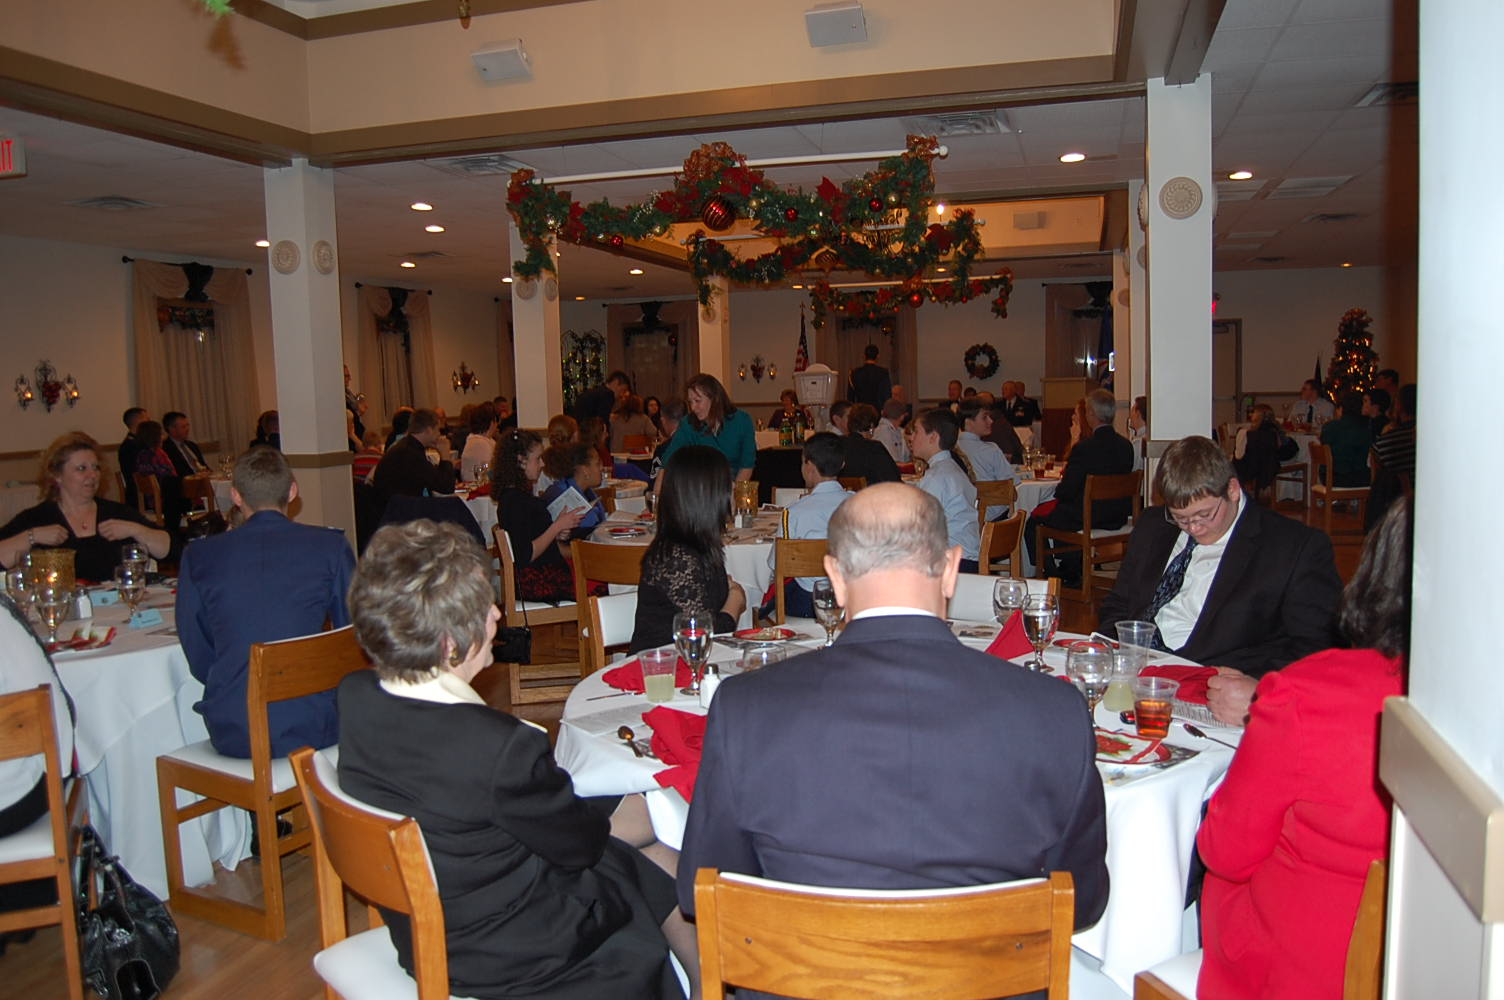 omaha composite squadron enjoys 5th annual dining out